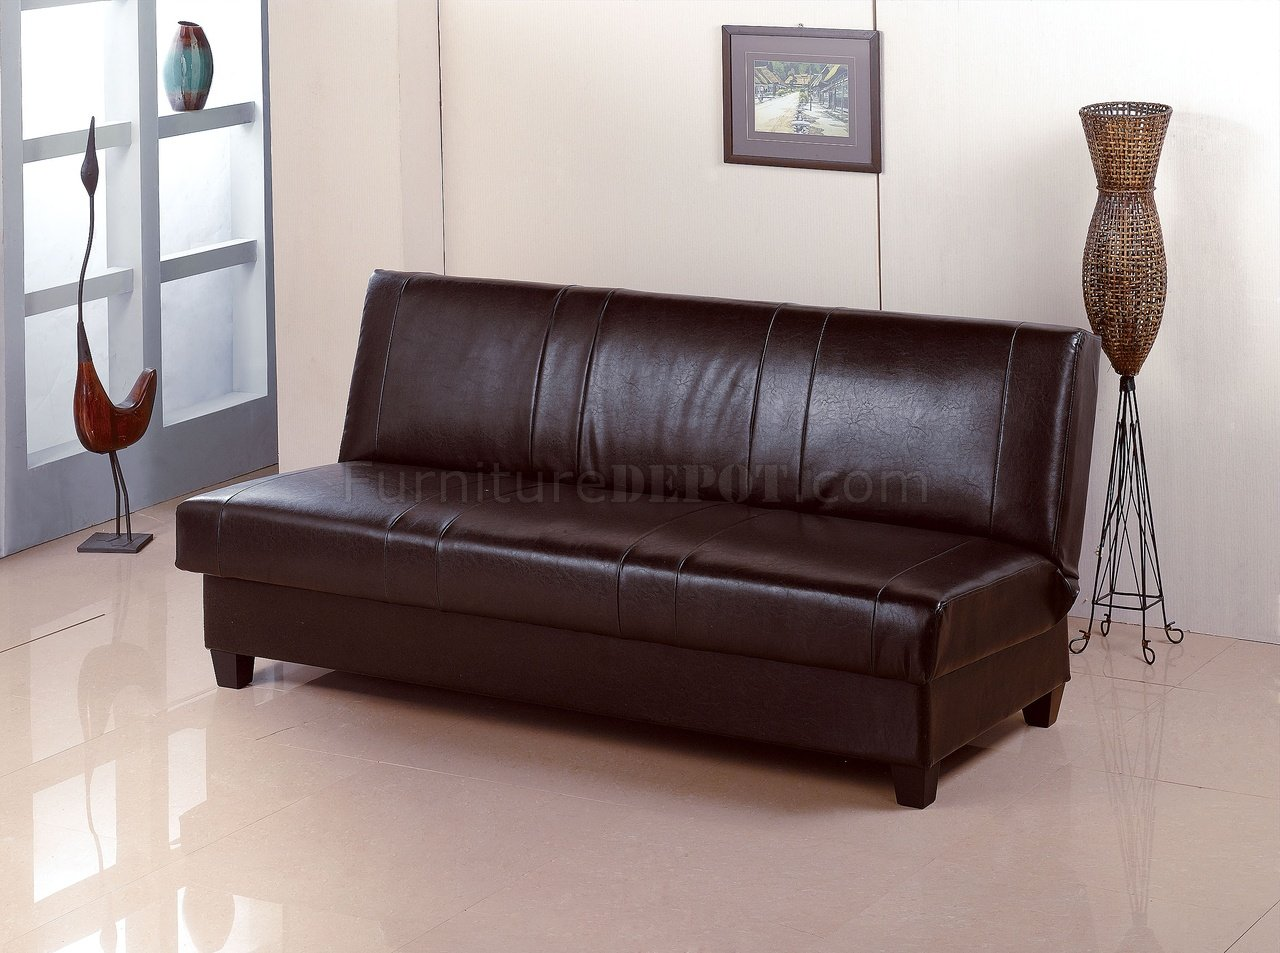 rome faux leather convertible sofa bed brown contemporary round sectional deep